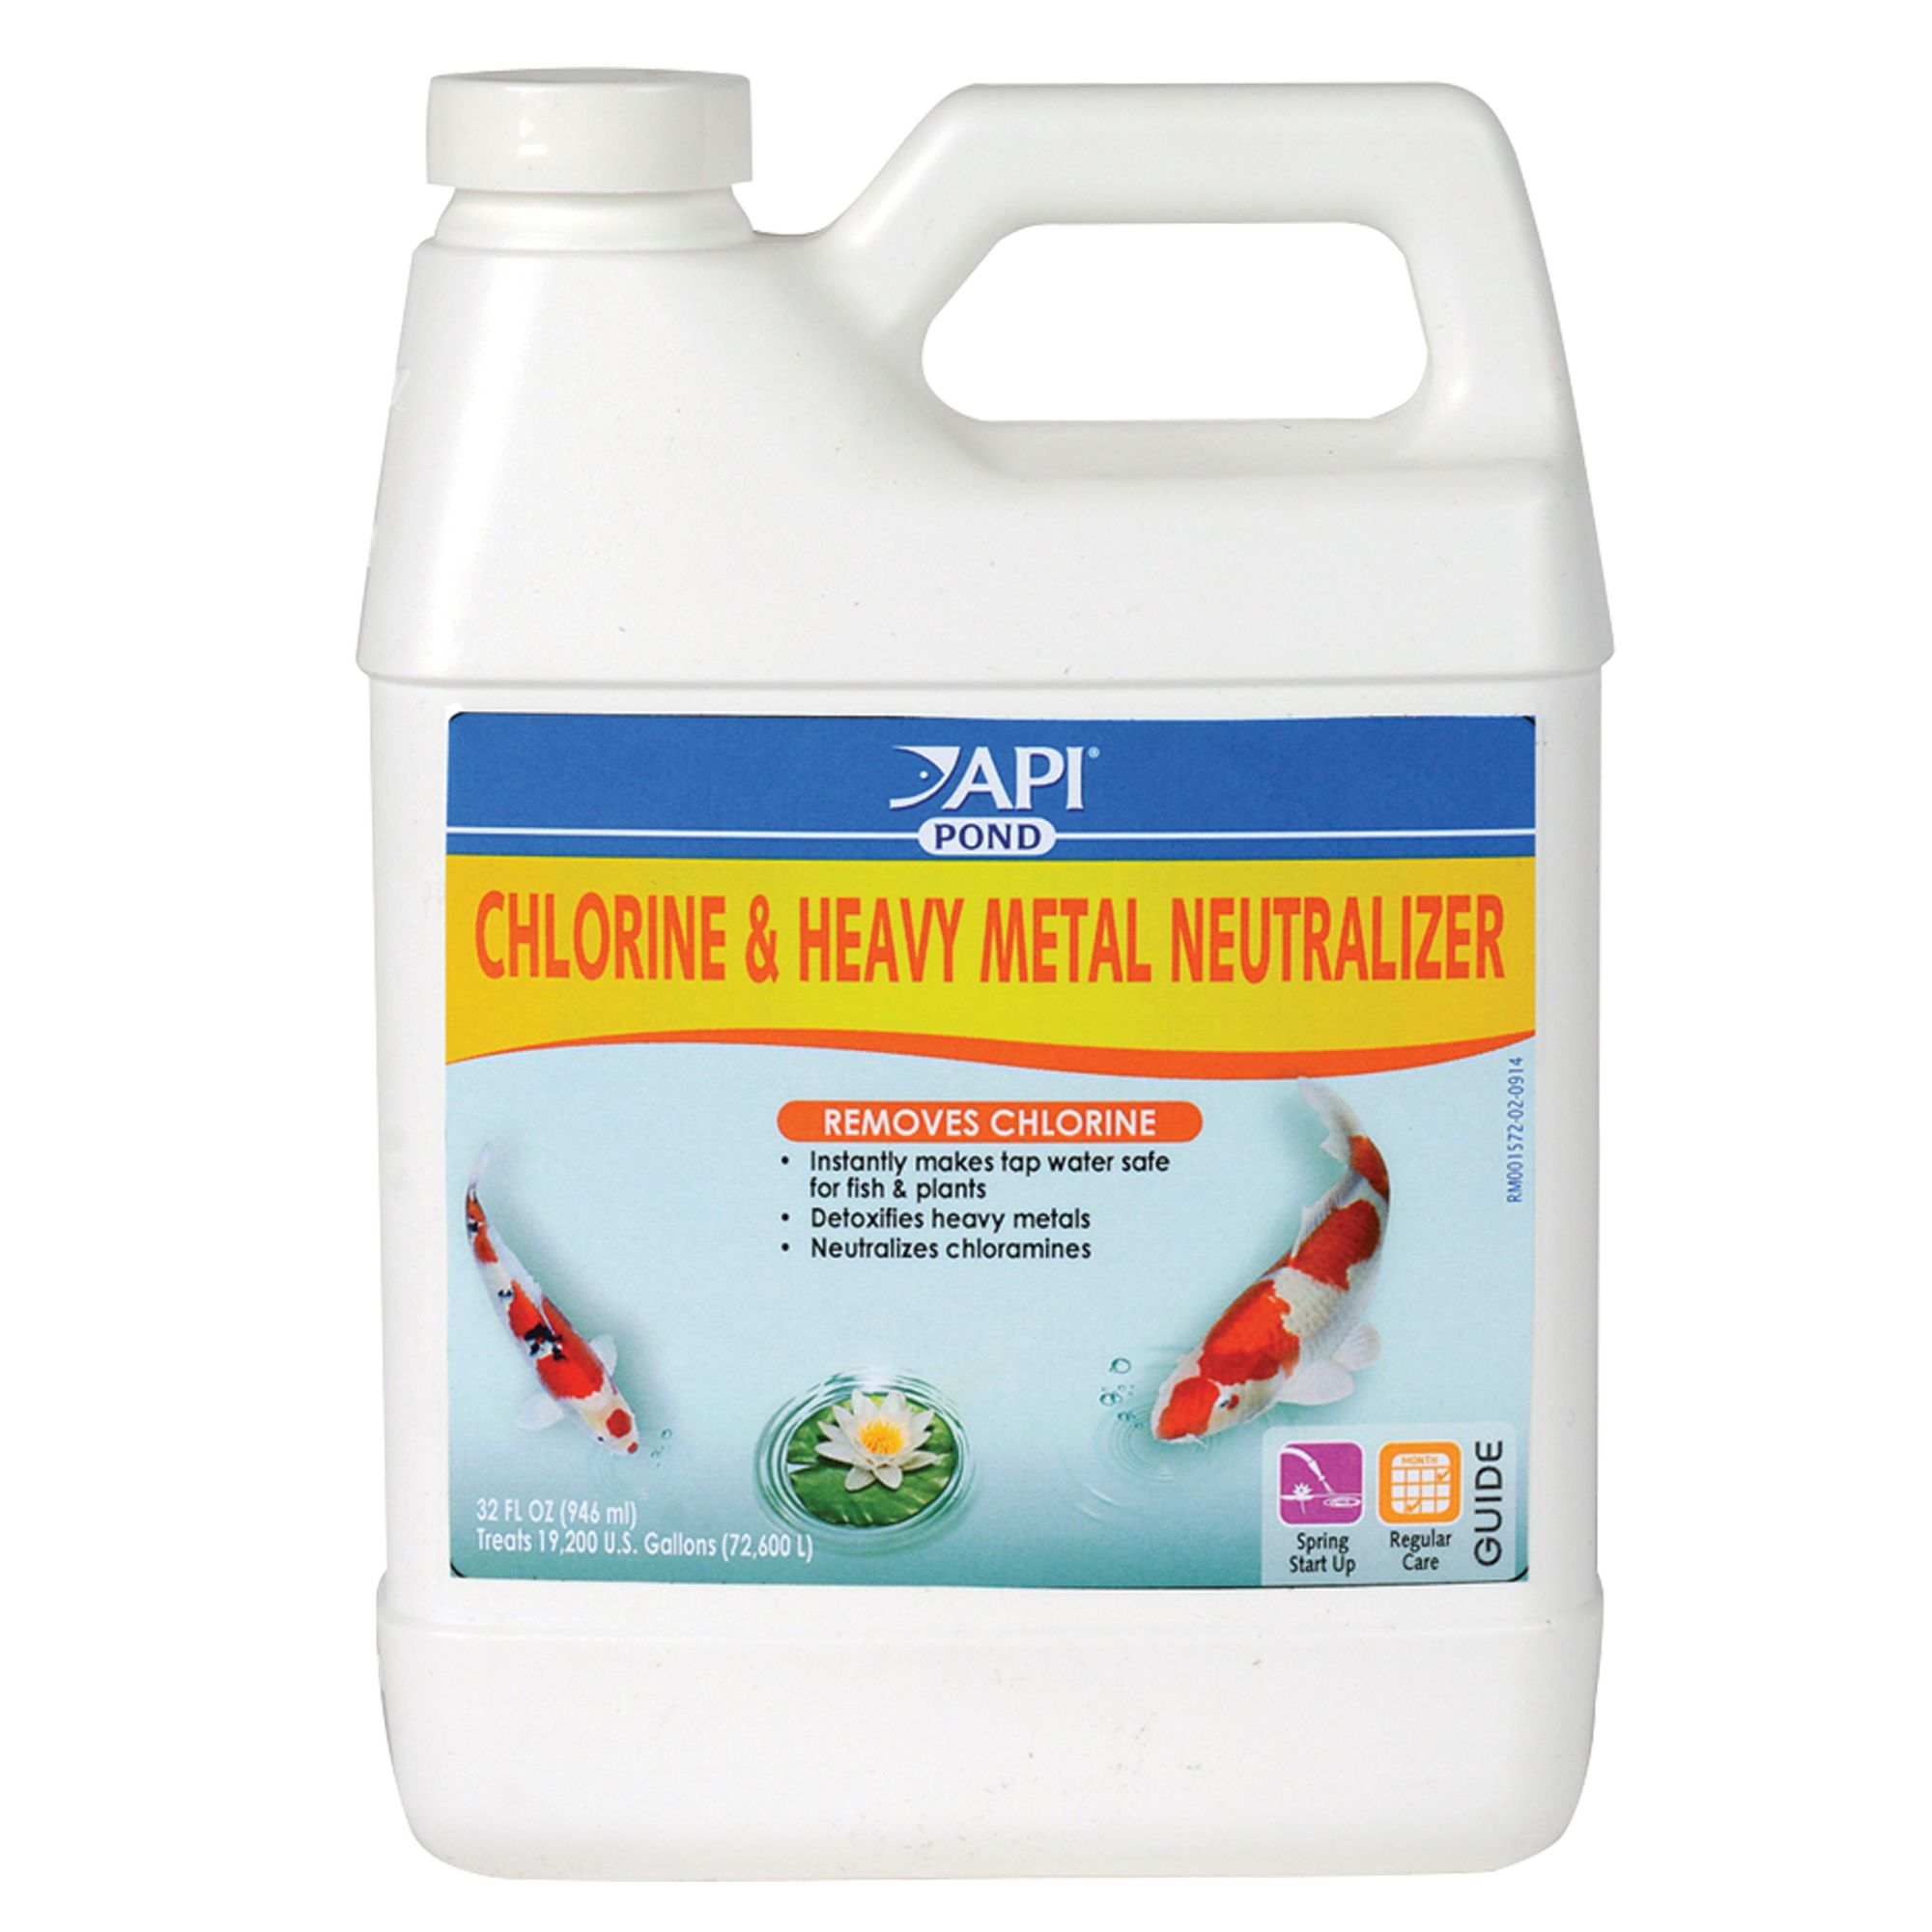 Api Pond Chlorine and Heavy Metal Neutralizer size: 32 Fl Oz